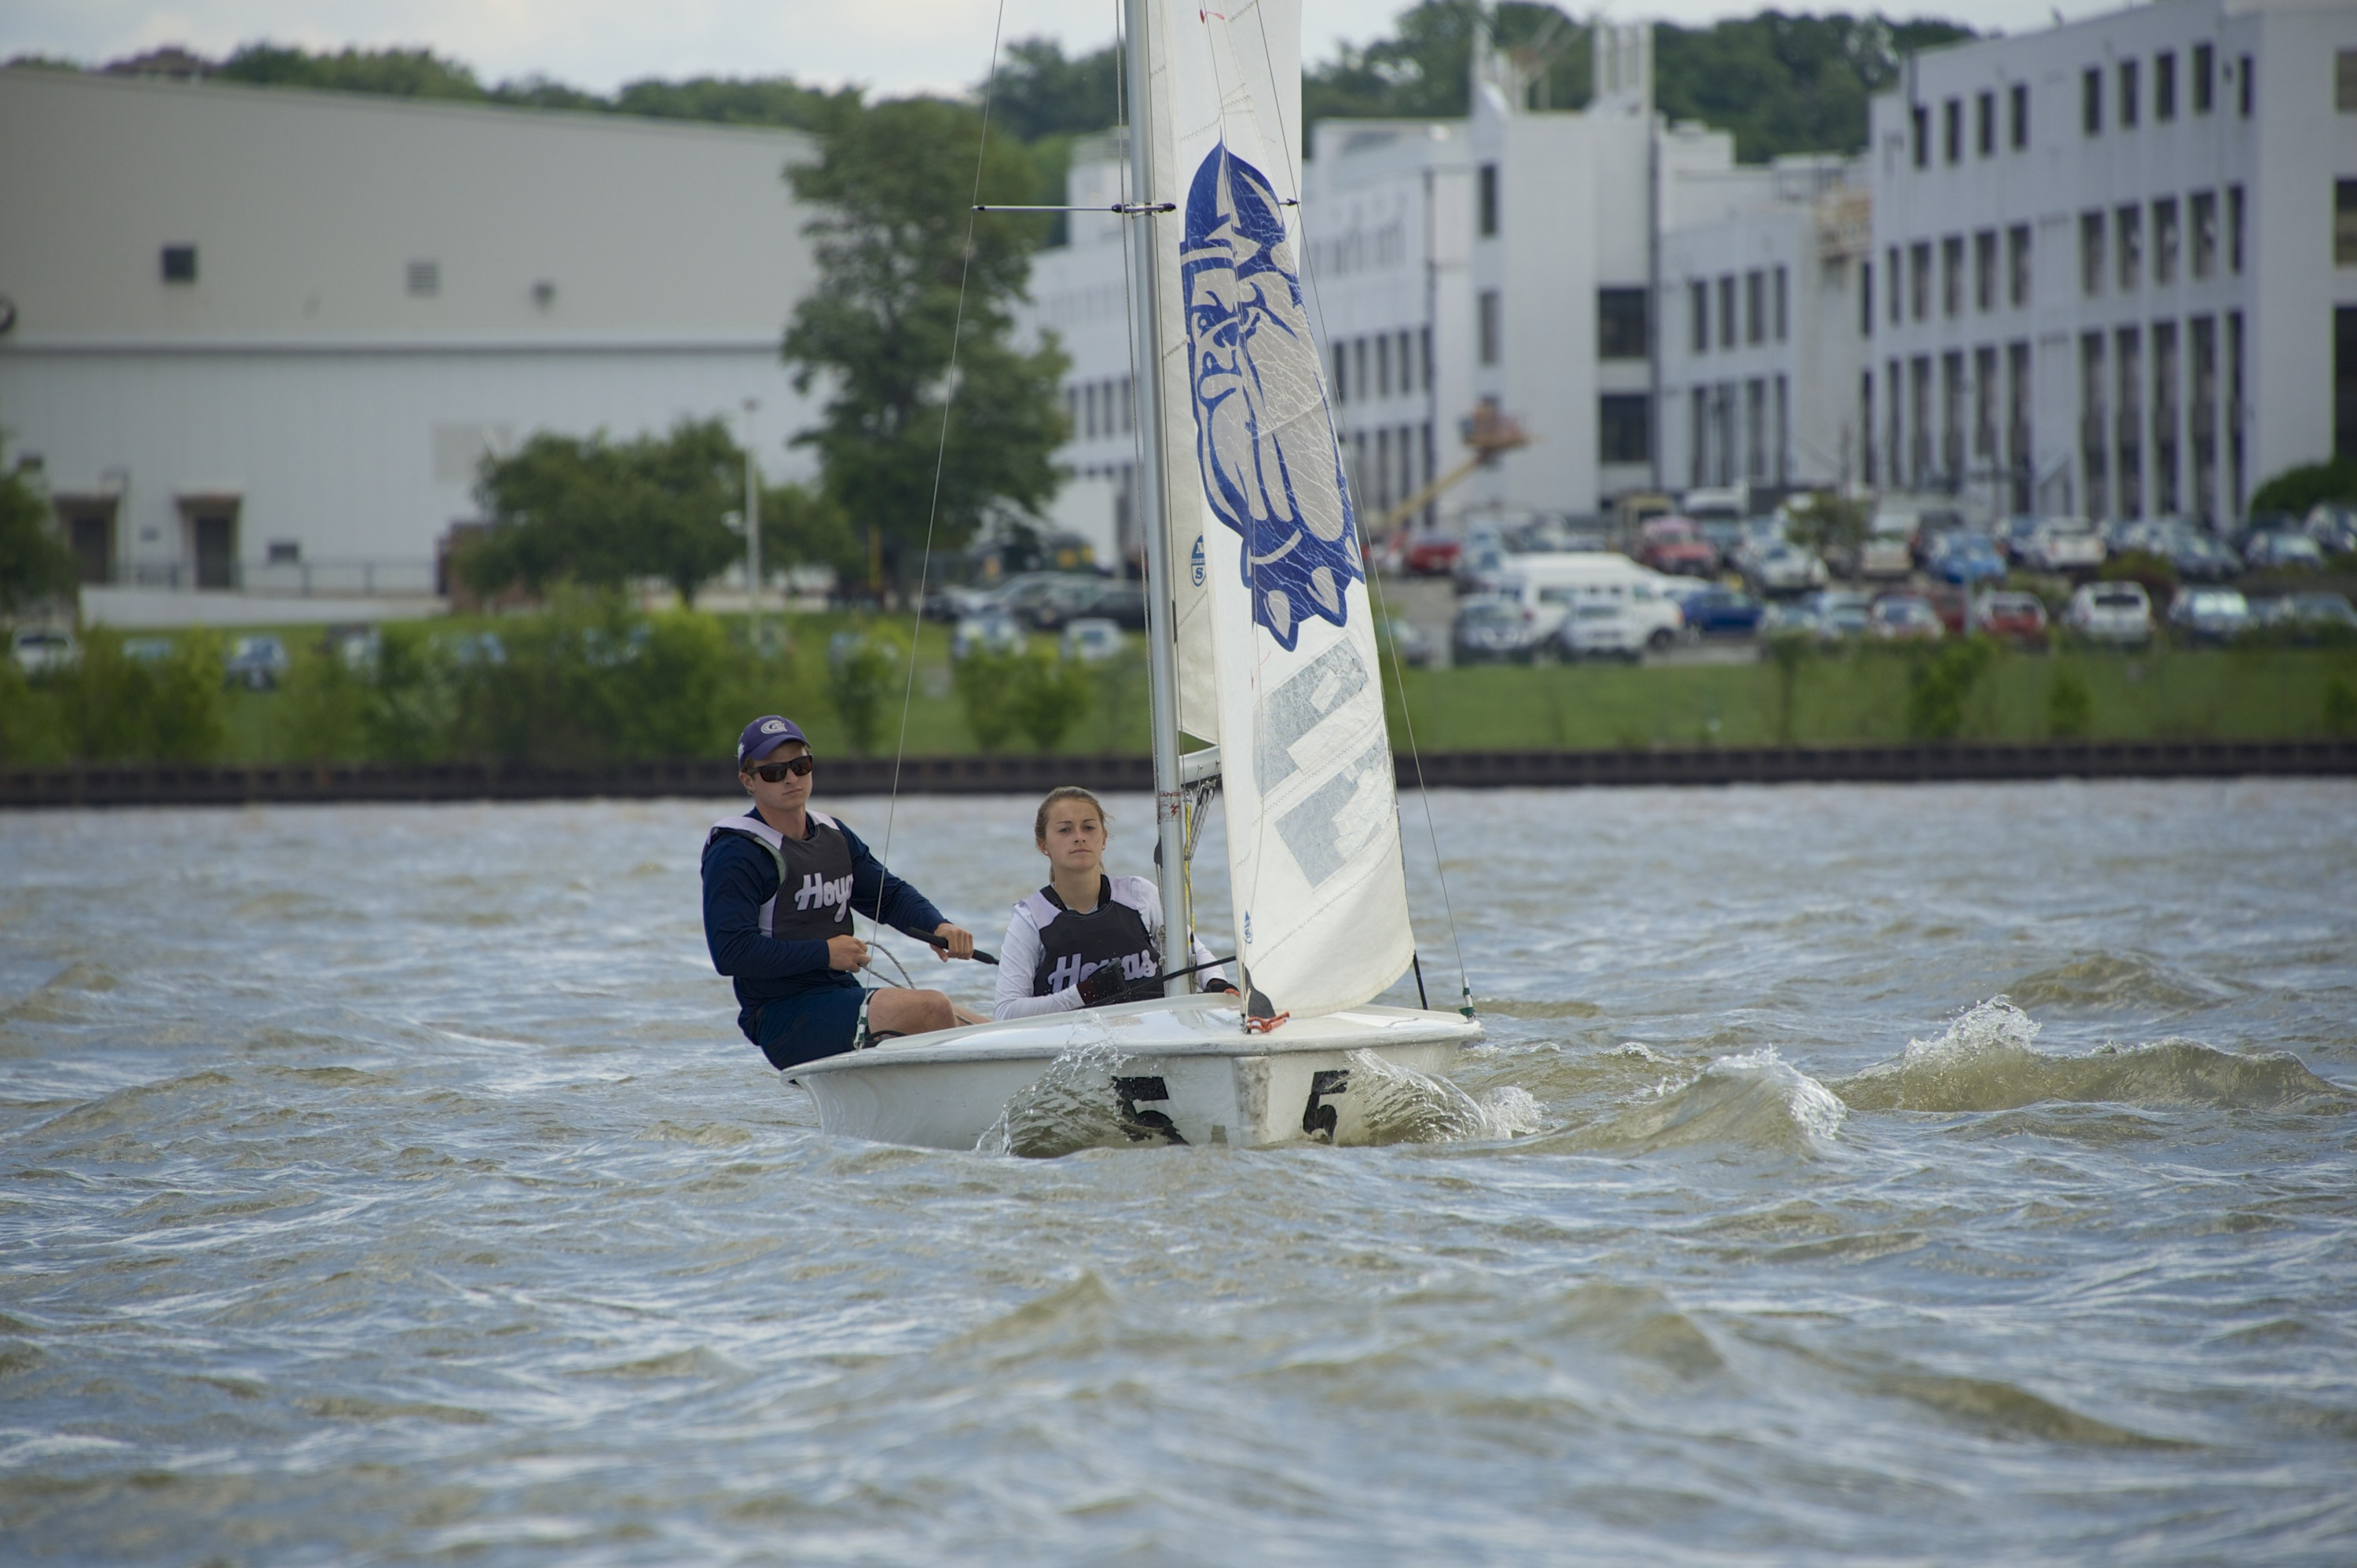 The Georgetown University sailing team is currently in sixth place in the APS Team Race National Championship.